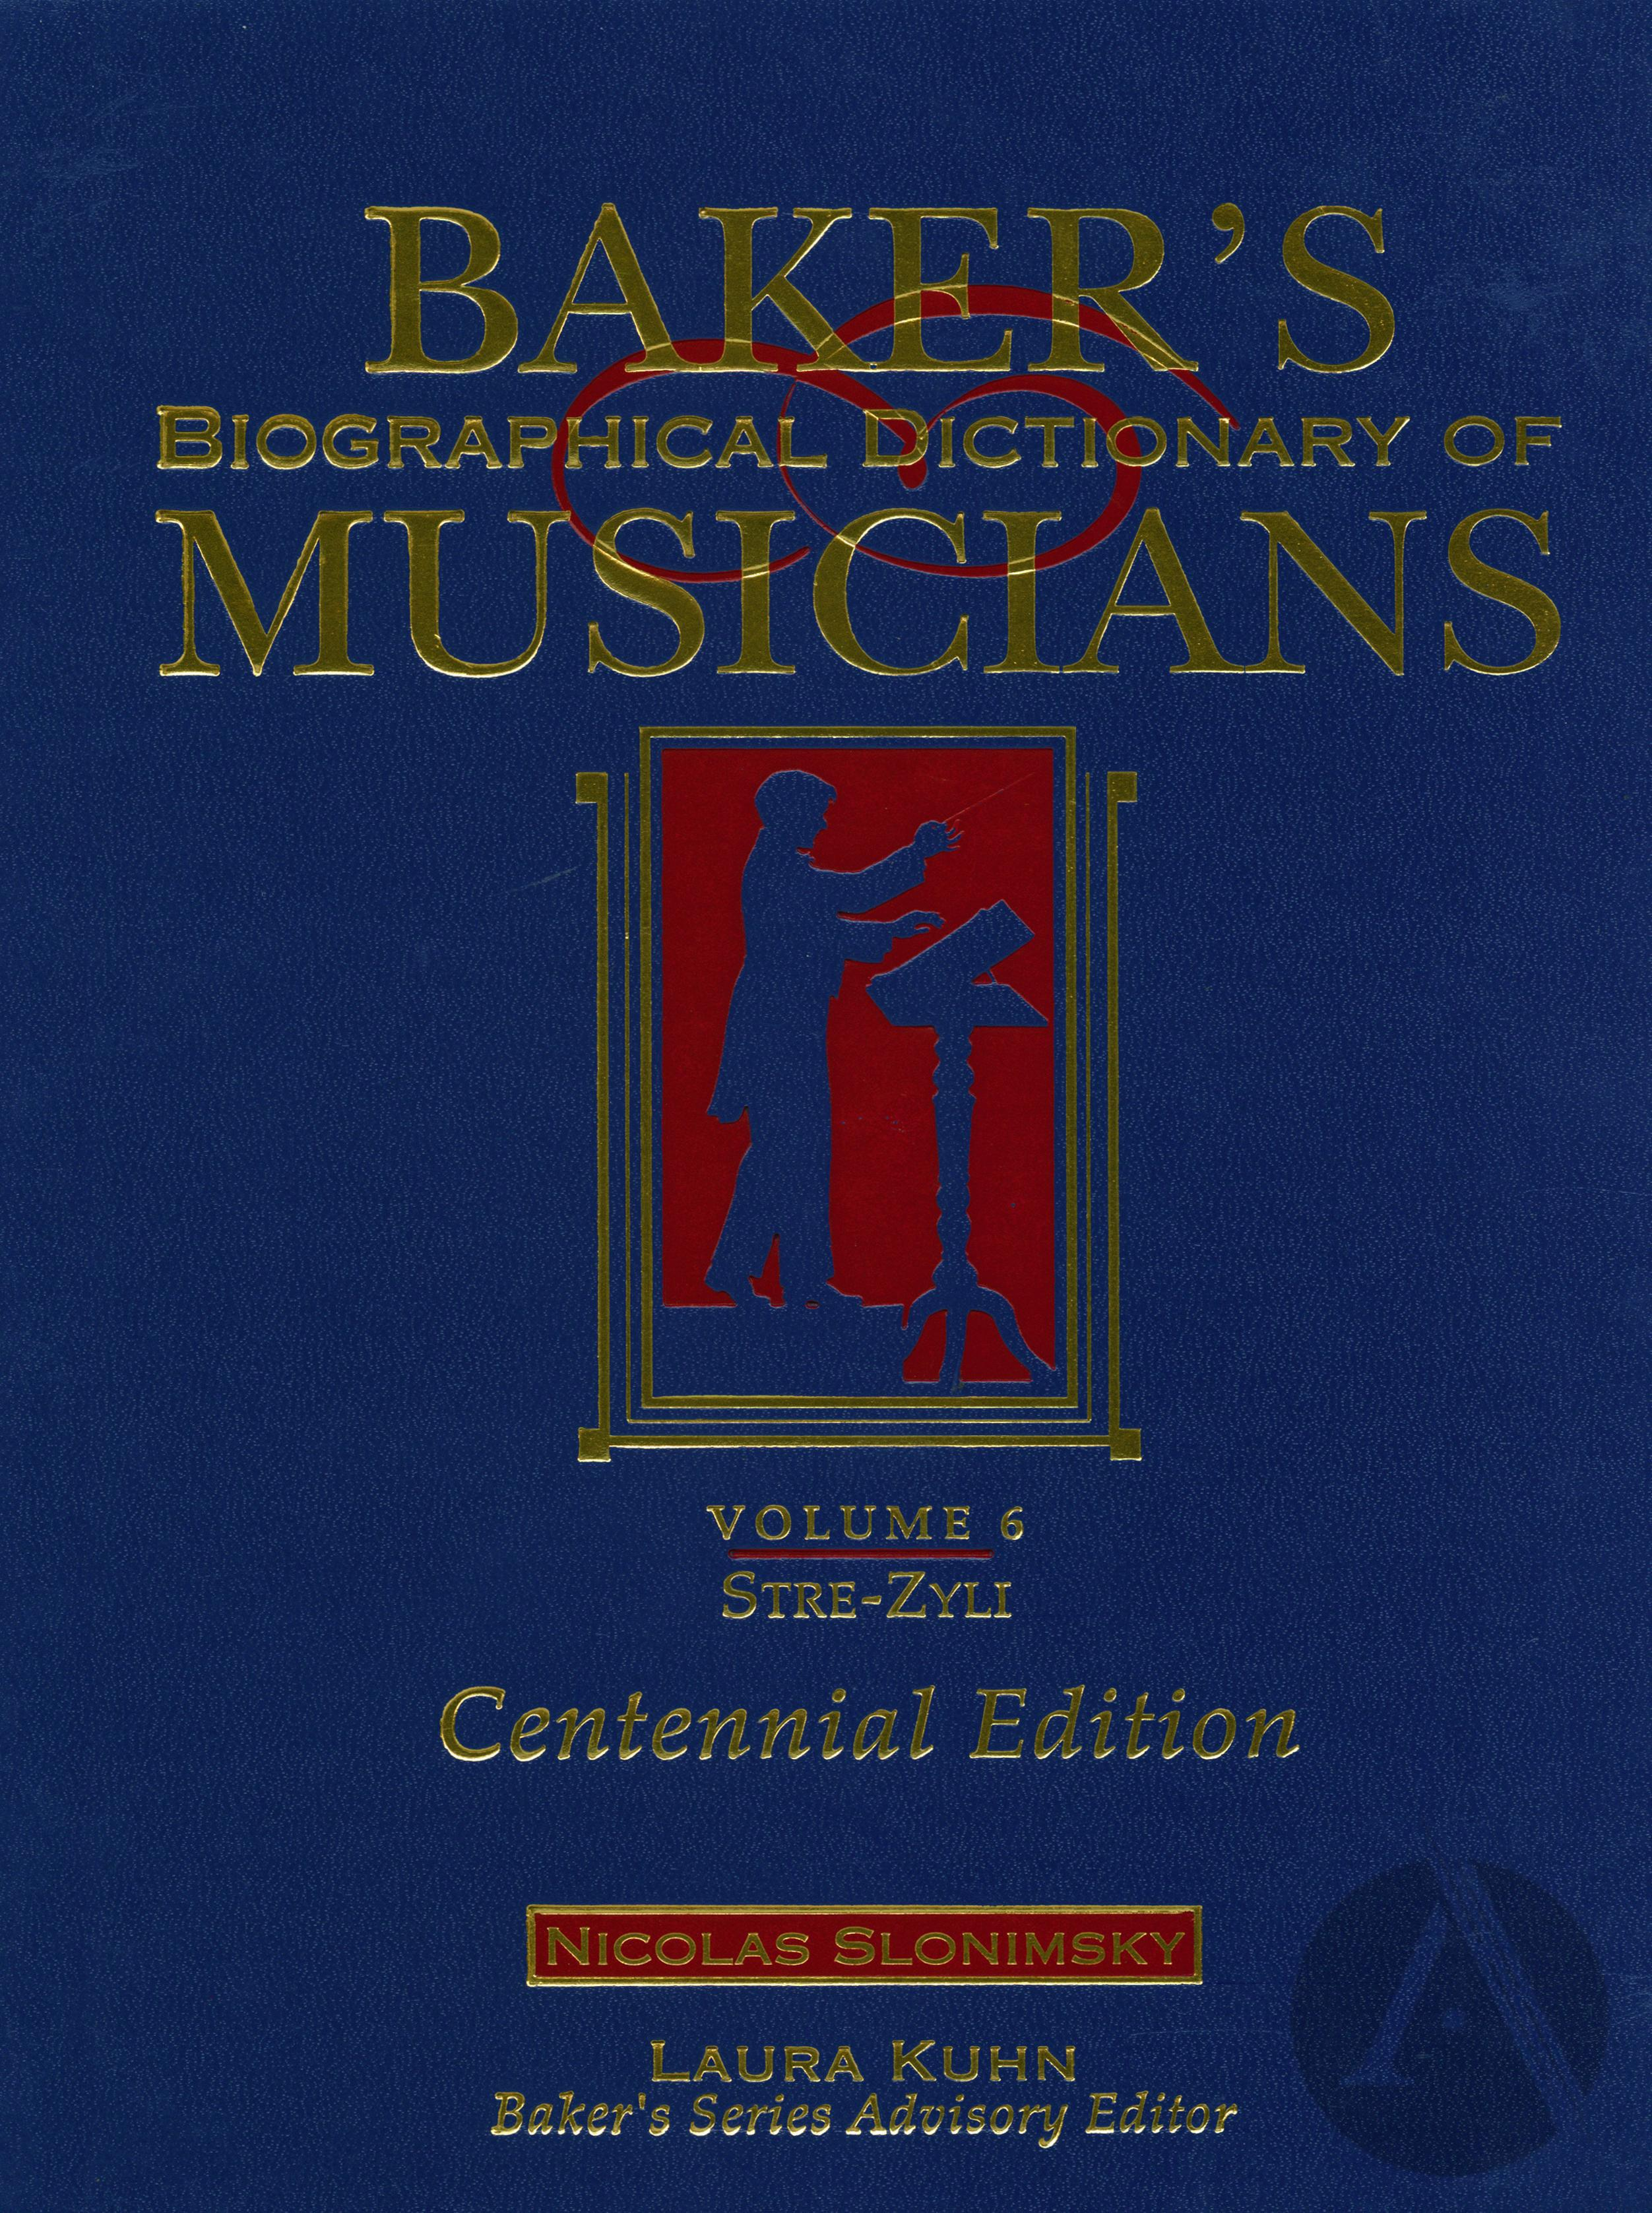 Baker's Biographical Dictionary of Musicians, vol. 1 | Alexander Street, a  ProQuest Company